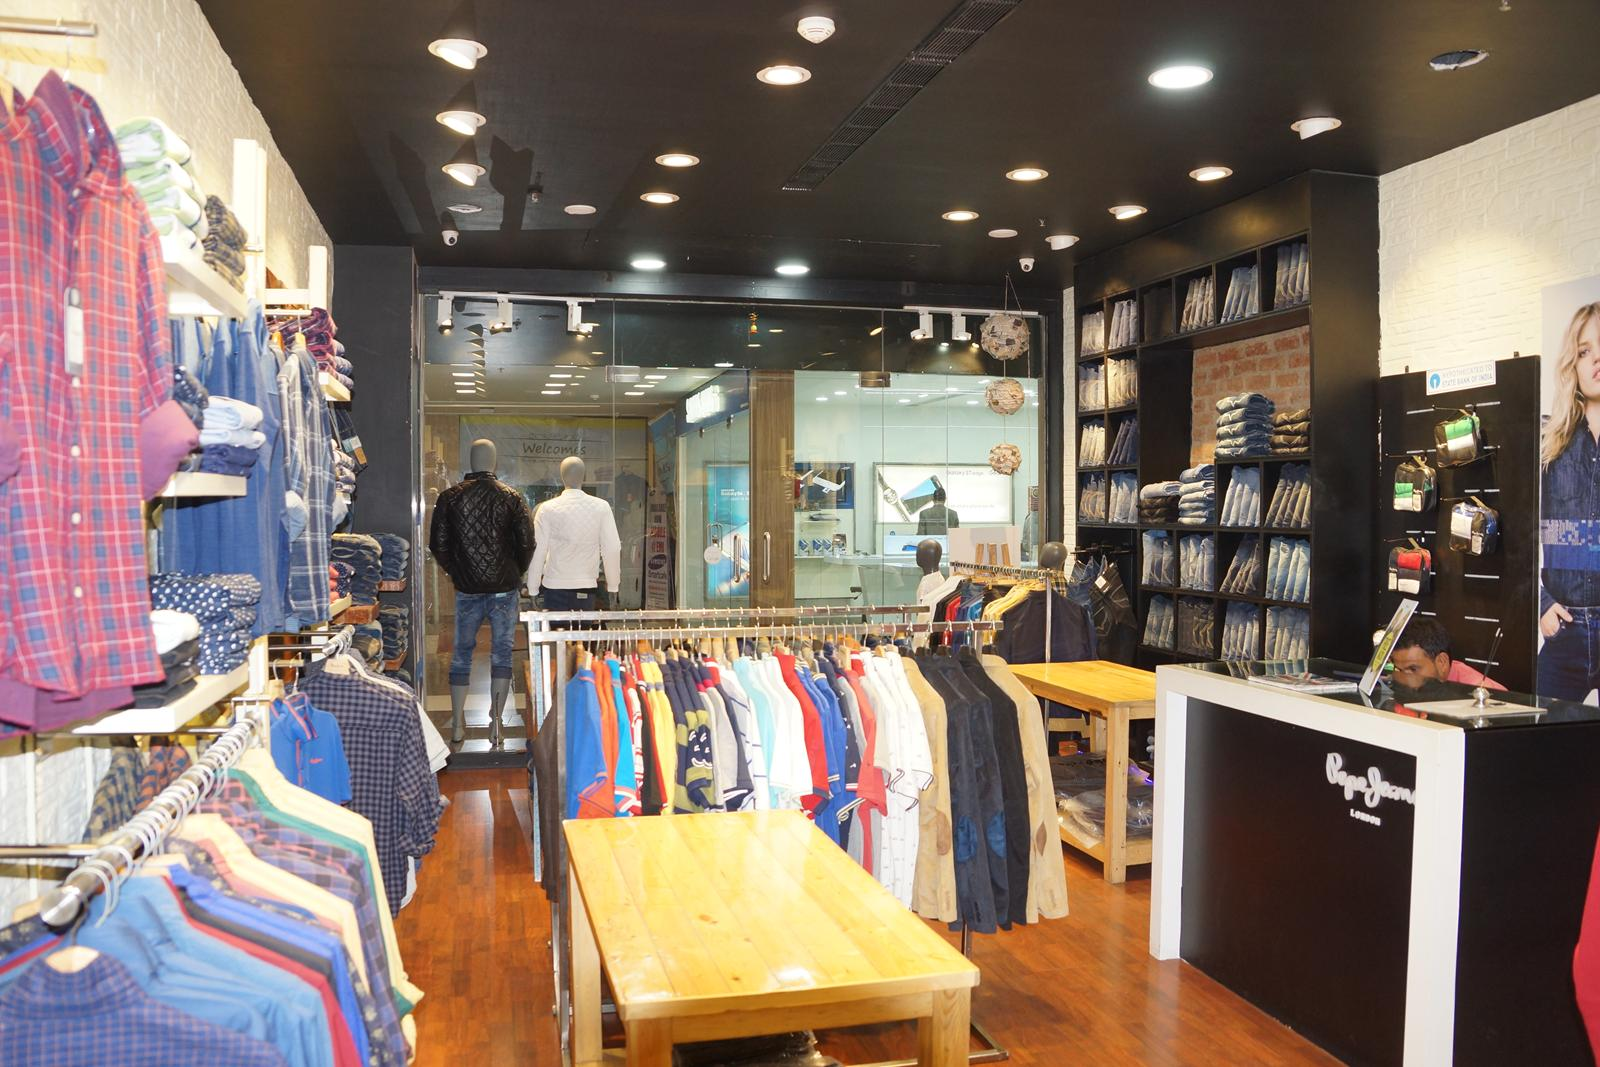 Pepe jeans showroom pepe jeans with pepe jeans showroom - Pepe jeans showroom ...